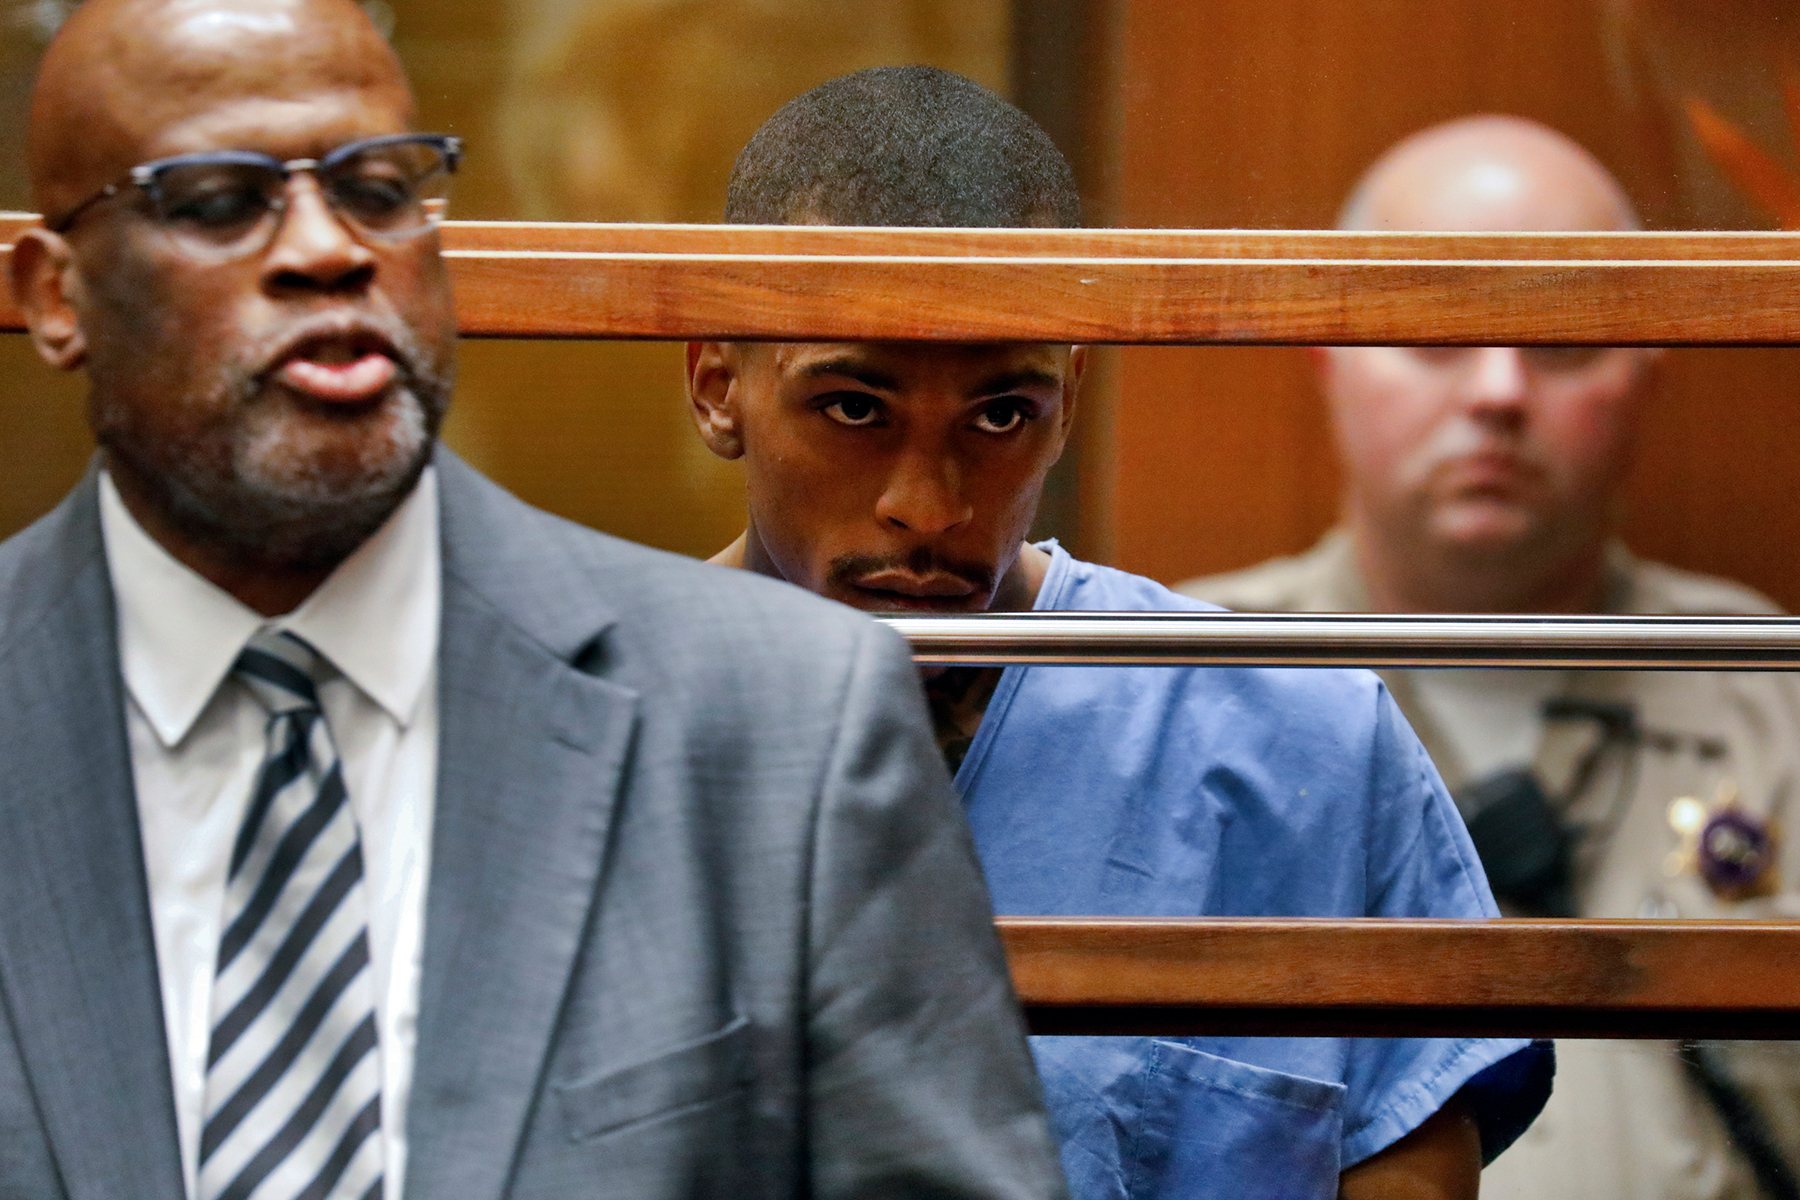 FILE - This April 4, 2019 file photo shows Eric Holder, the suspect in the killing of rapper Nipsey Hussle in Los Angeles County Superior Court with his attorney Christopher Darden, left. Holder is charged with murder and two counts of attempted murder in connection with the attack outside Hussle's The Marathon clothing store on March 31, 2019. A year after Hussle's death, his popularity and influence are as strong as ever. He won two posthumous Grammys in January, he remains a favorite of his hip-hop peers and his death has reshaped his hometown of Los Angeles in some unexpected ways. (Patrick T. Fallon/Pool via AP, File)